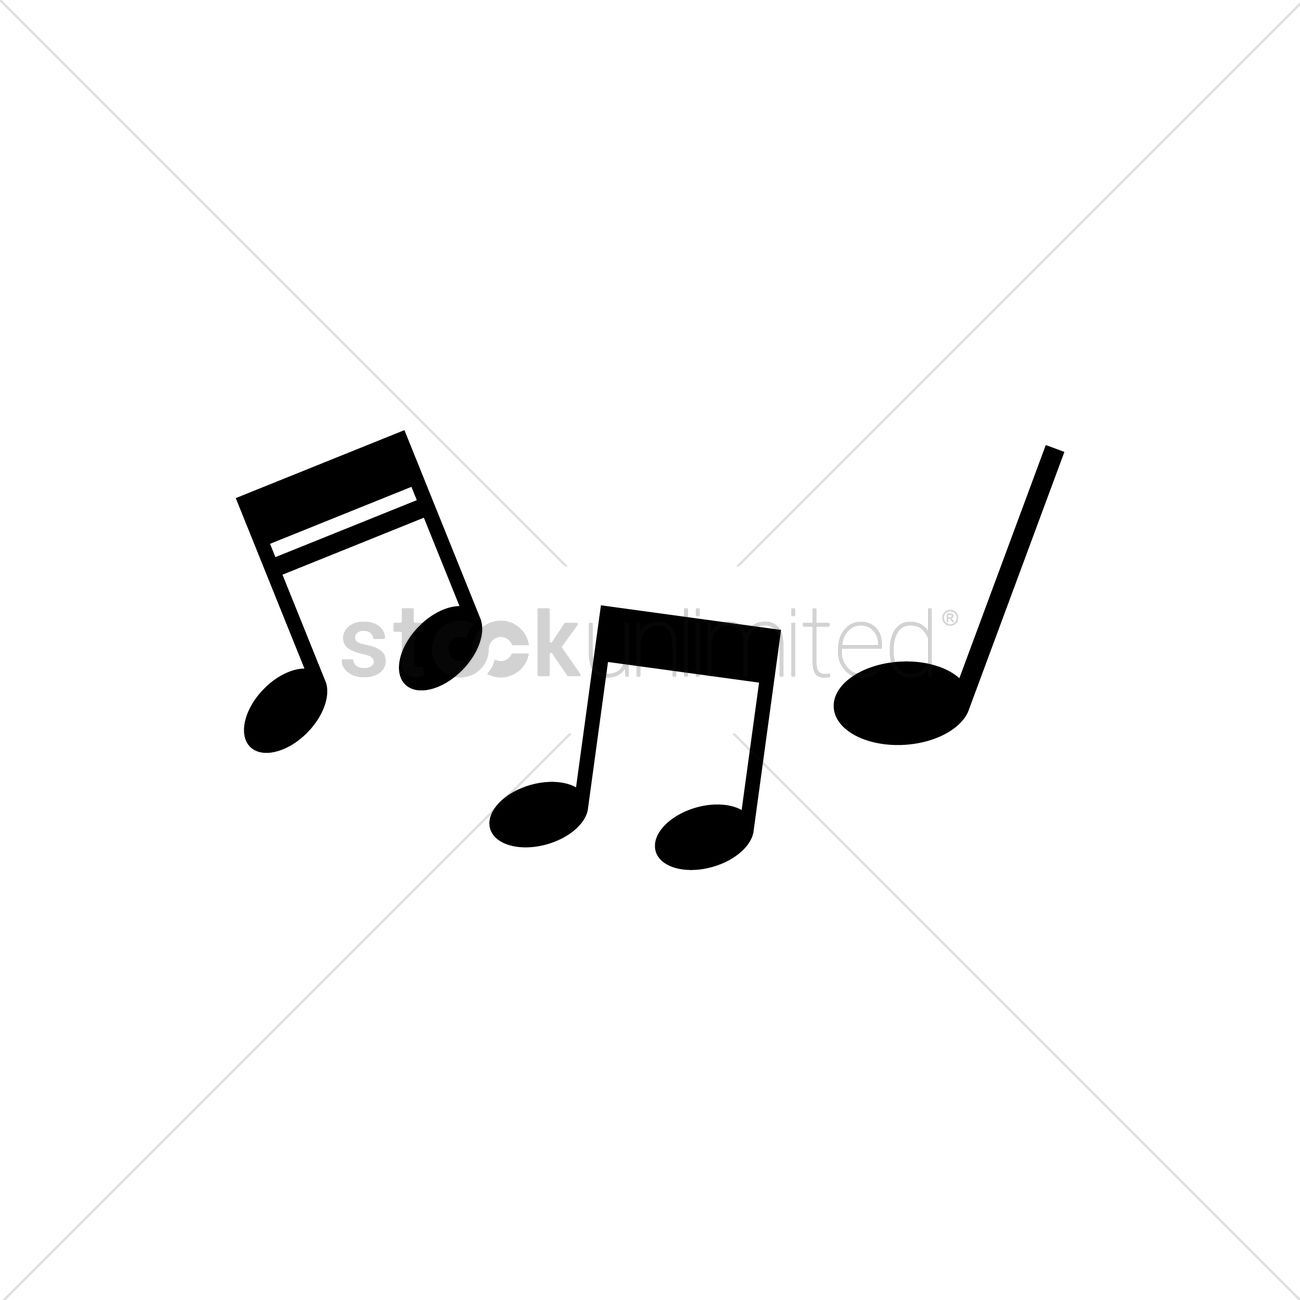 1300x1300 Free Silhouette Of Musical Notes Vector Image